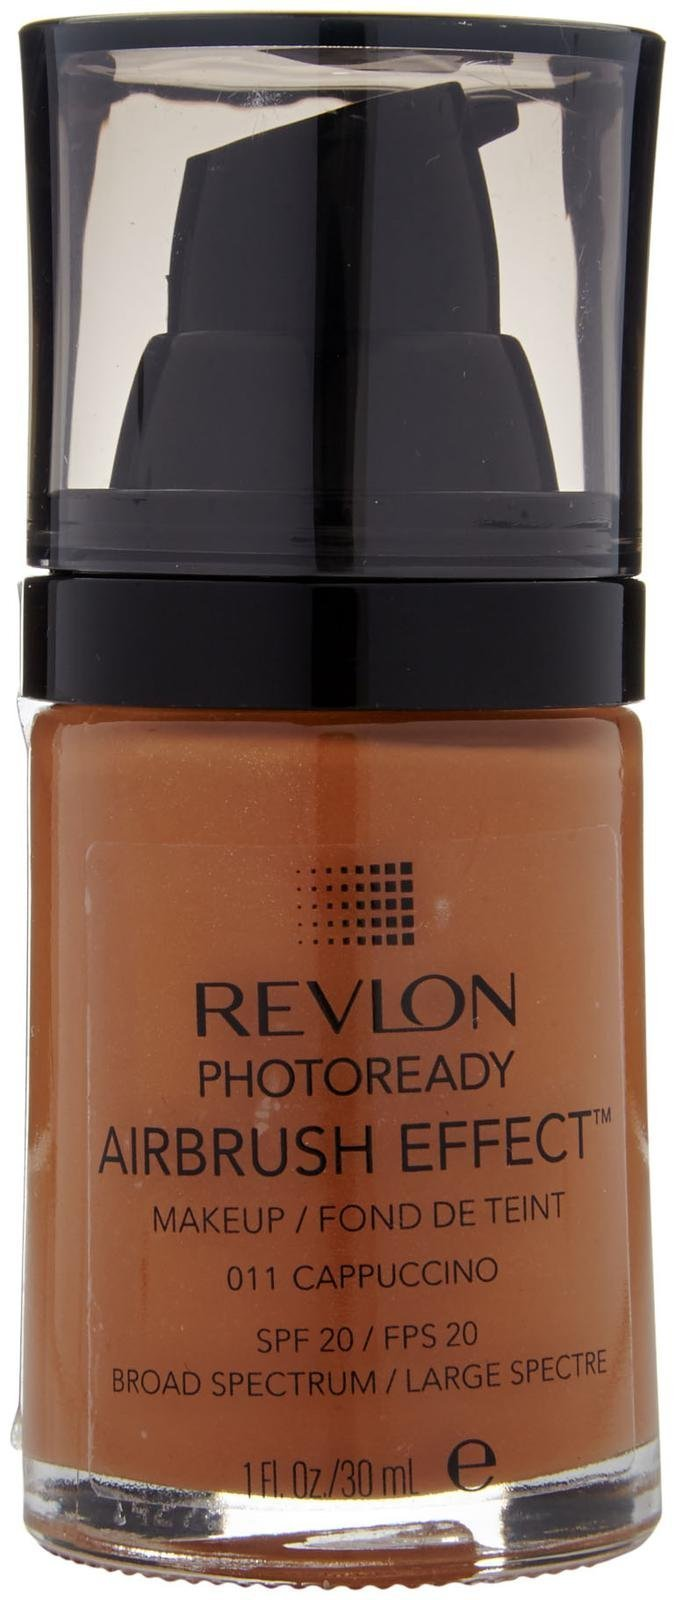 Revlon Photo ready Airbrush Effect Makeup, Cappuccino